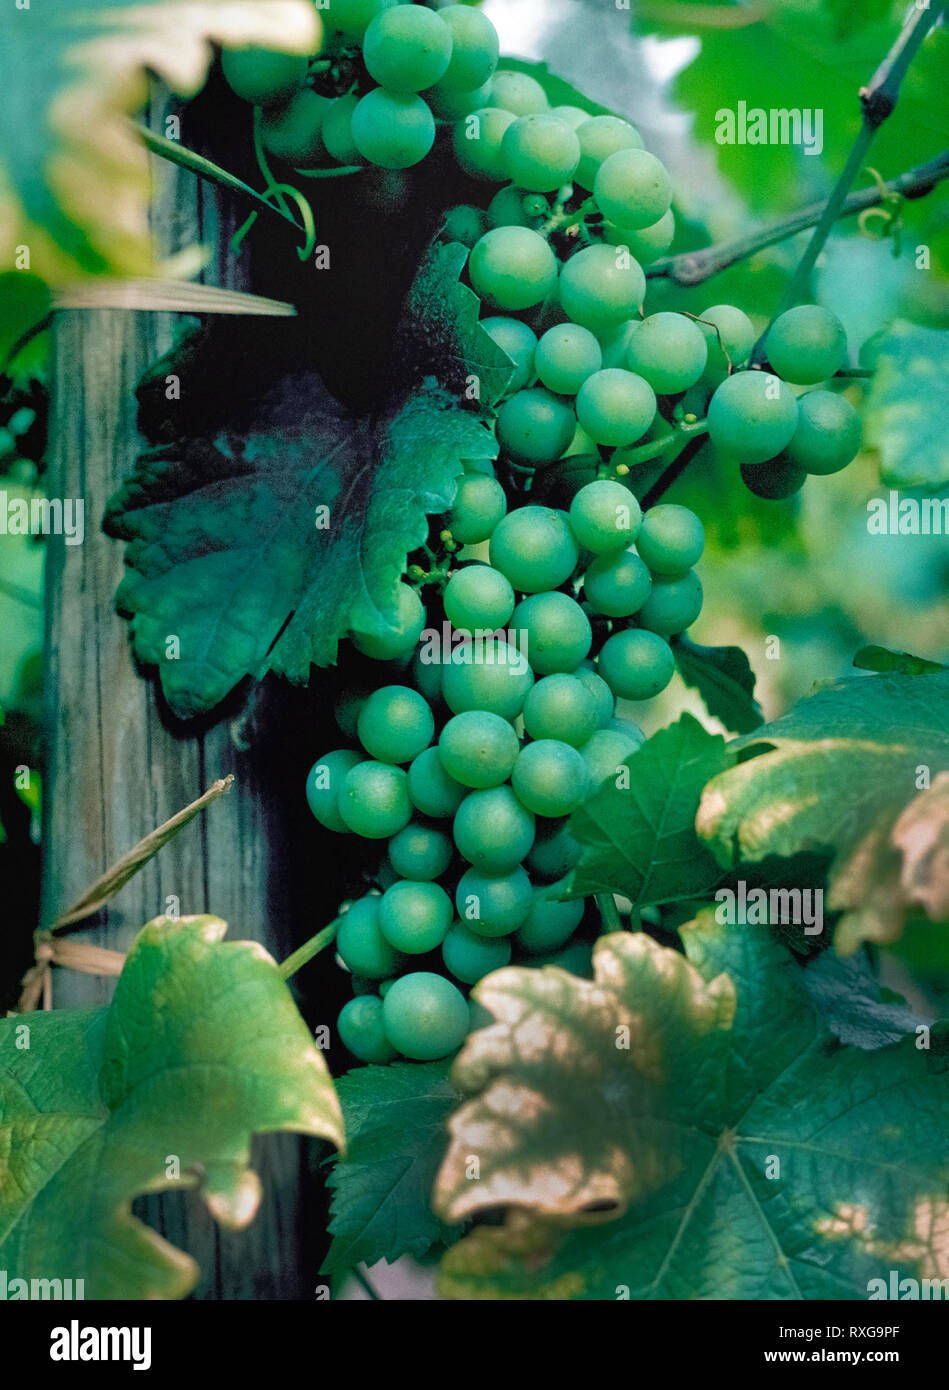 A cluster of ripe green grapes are ready to be picked in the vineyard of a winery in the wine-making region of Napa Valley, California, USA. The skin of green grapes is removed before they are fermented to make white wines, such as Chardonnay, Sauvignon Blanc and Riesling. - Stock Image